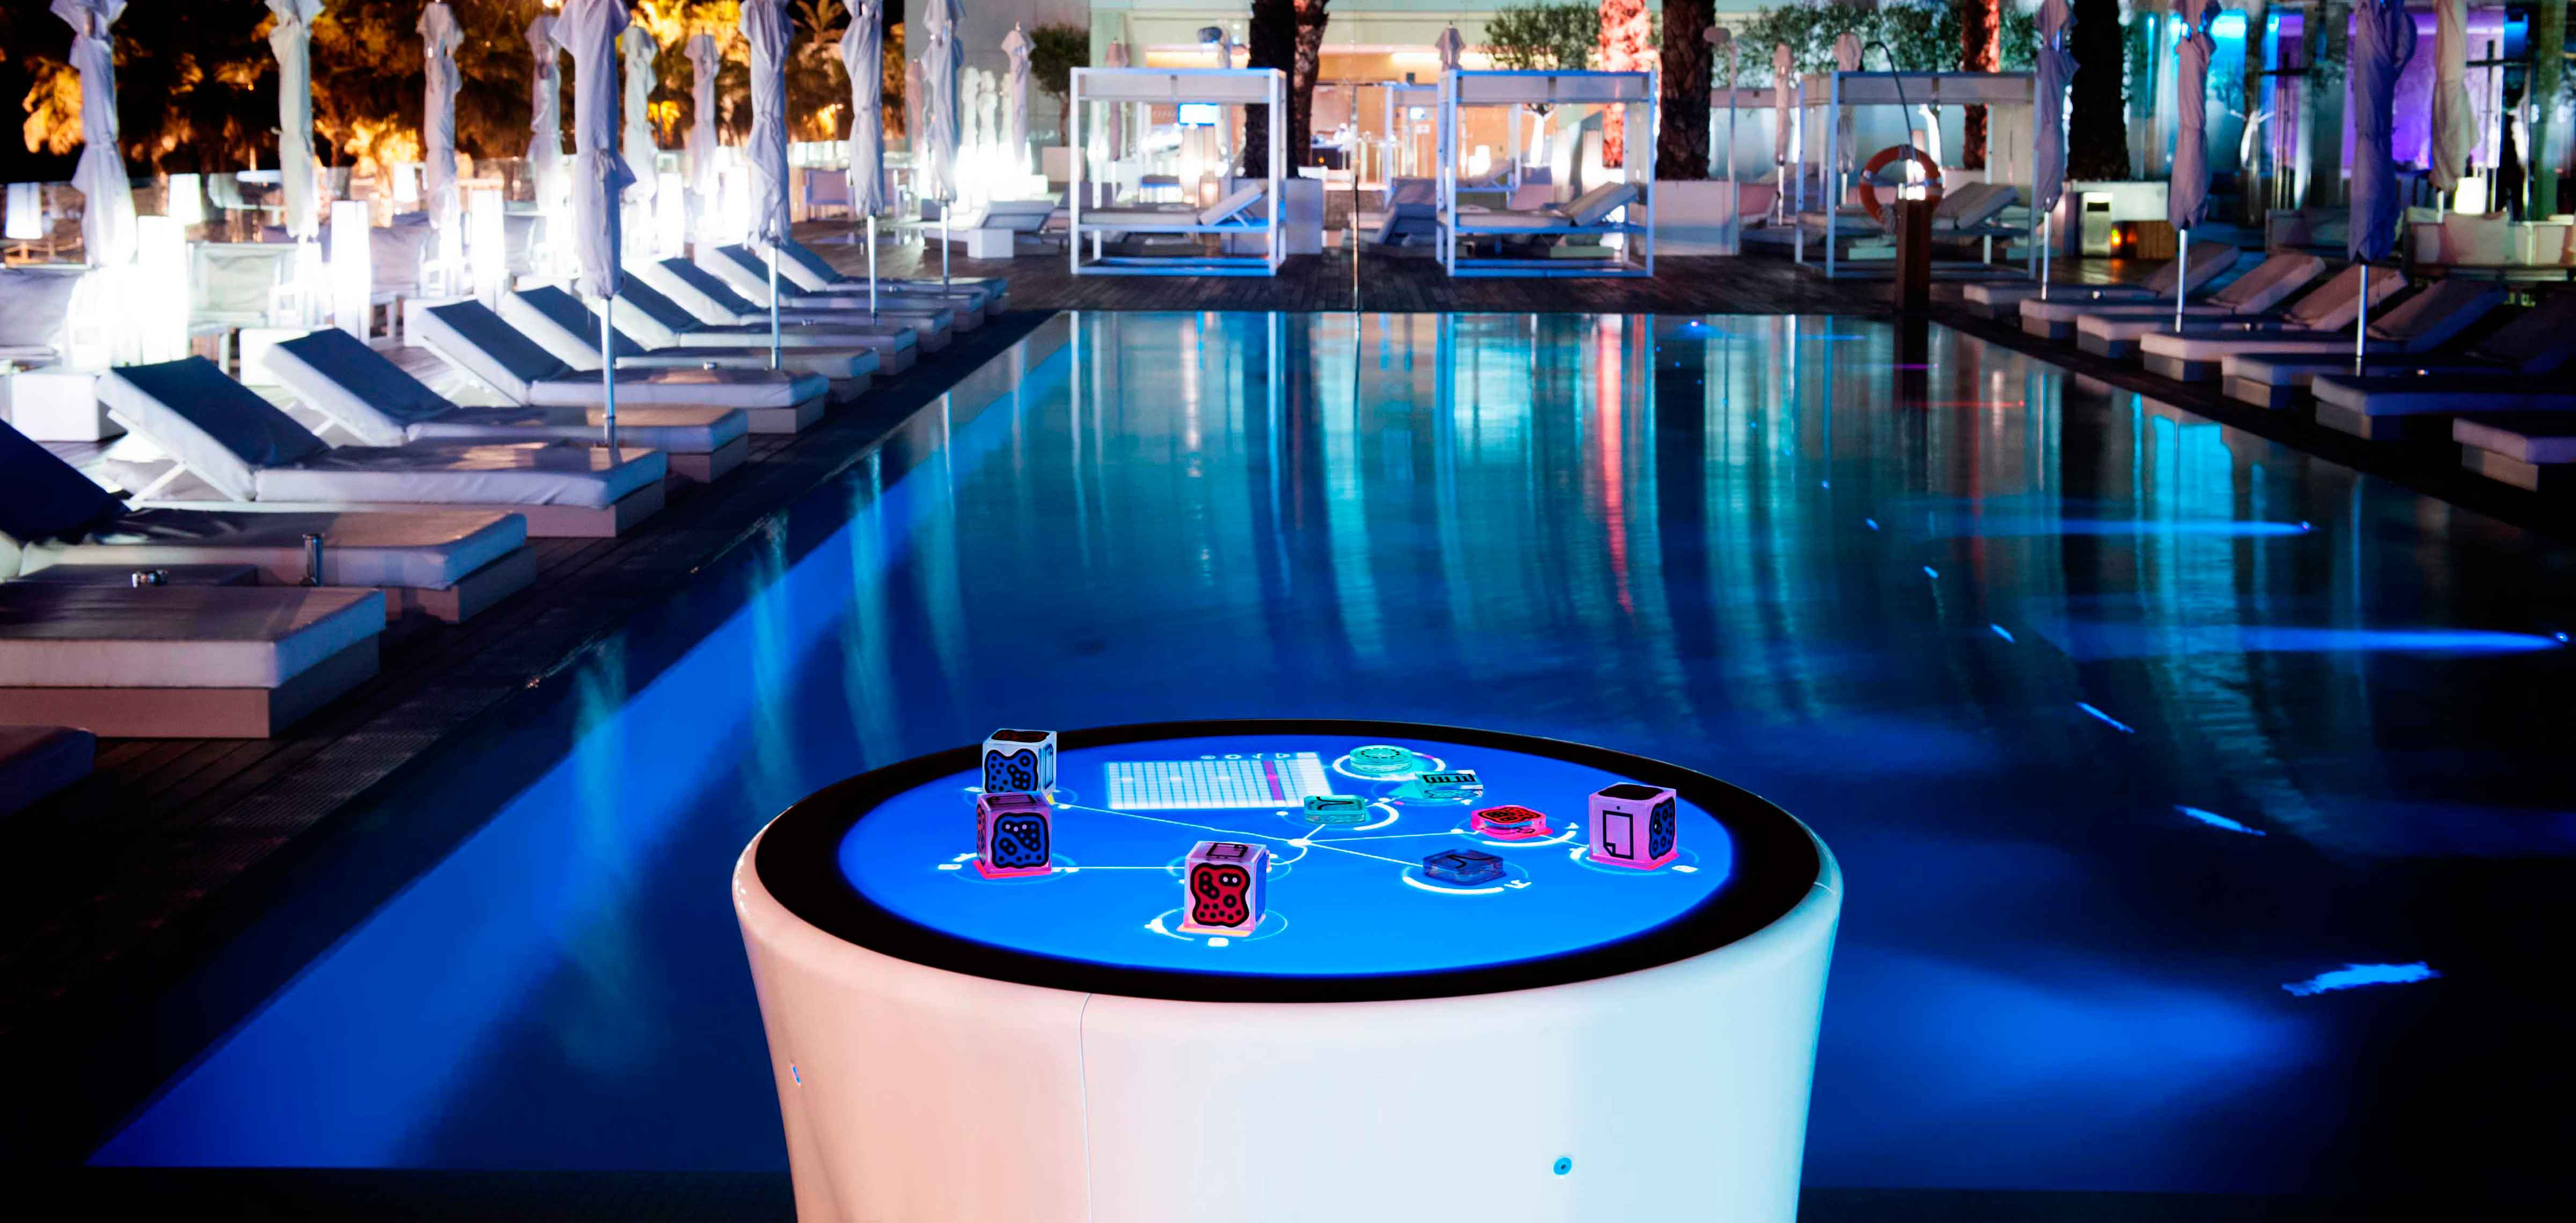 Reactable-Experience-WD-3 (1)